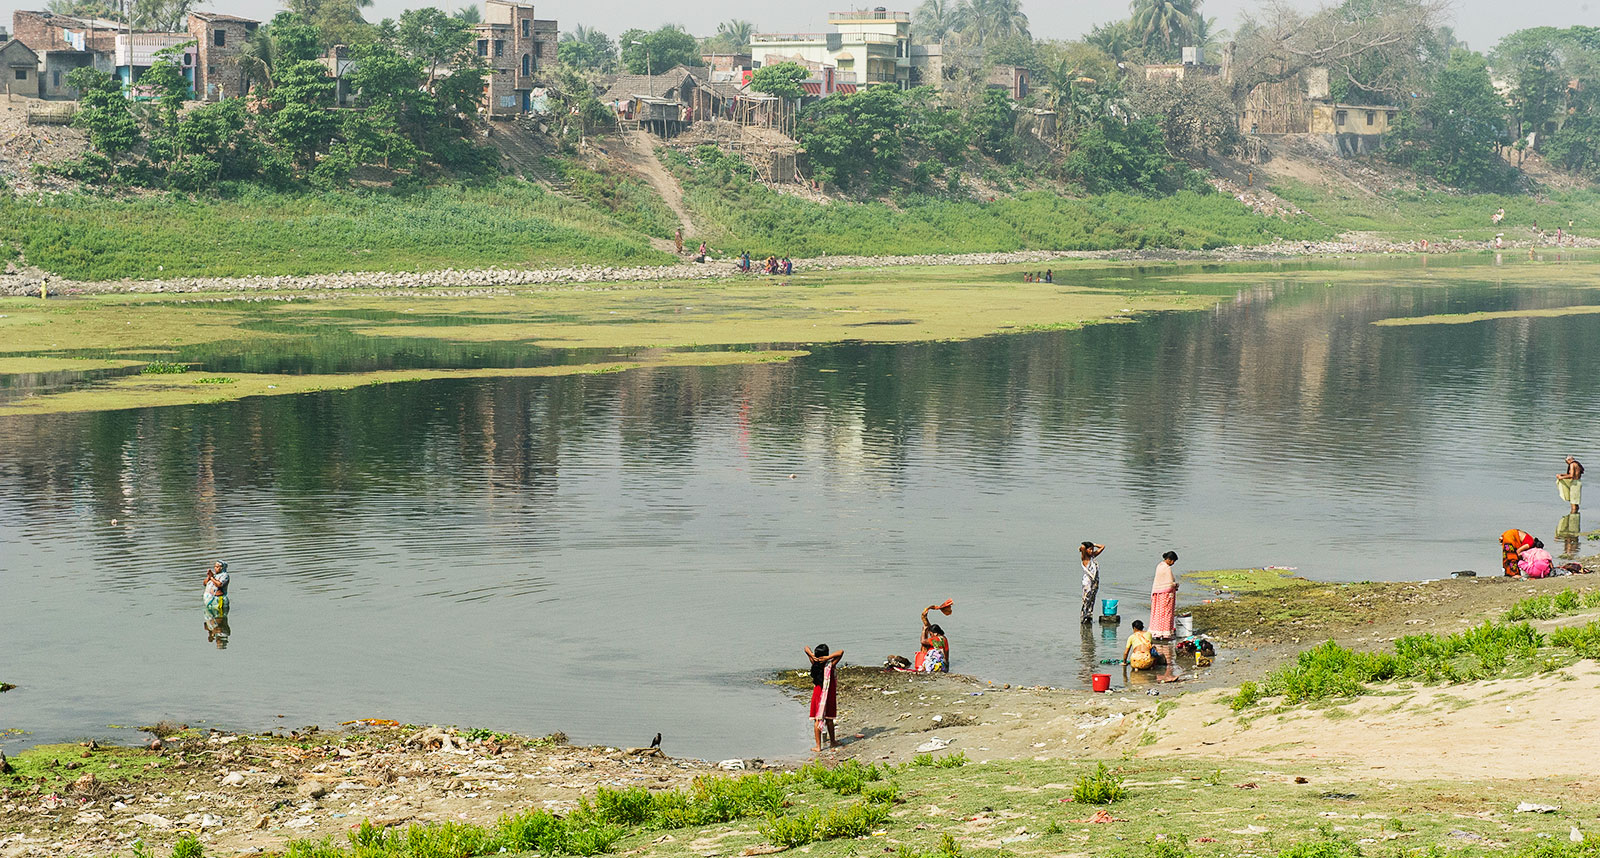 People washing clothes at the Ganges River. A water crisis in India, and a clean water shortage has created the need for water scarcity solutions.